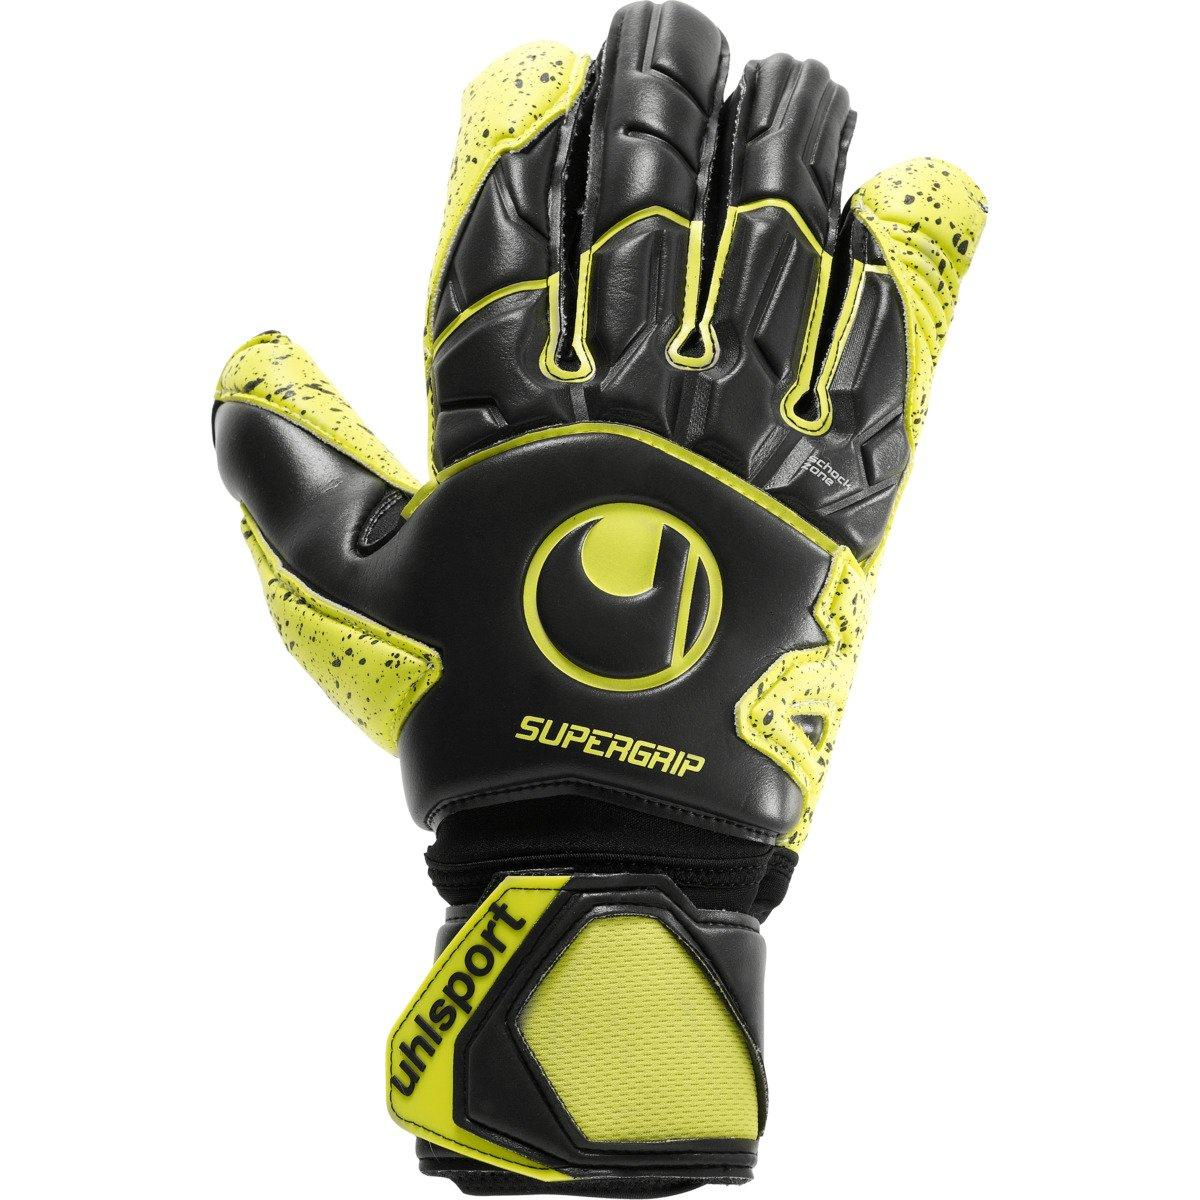 Uhlsport Supergrip flex frame carbon